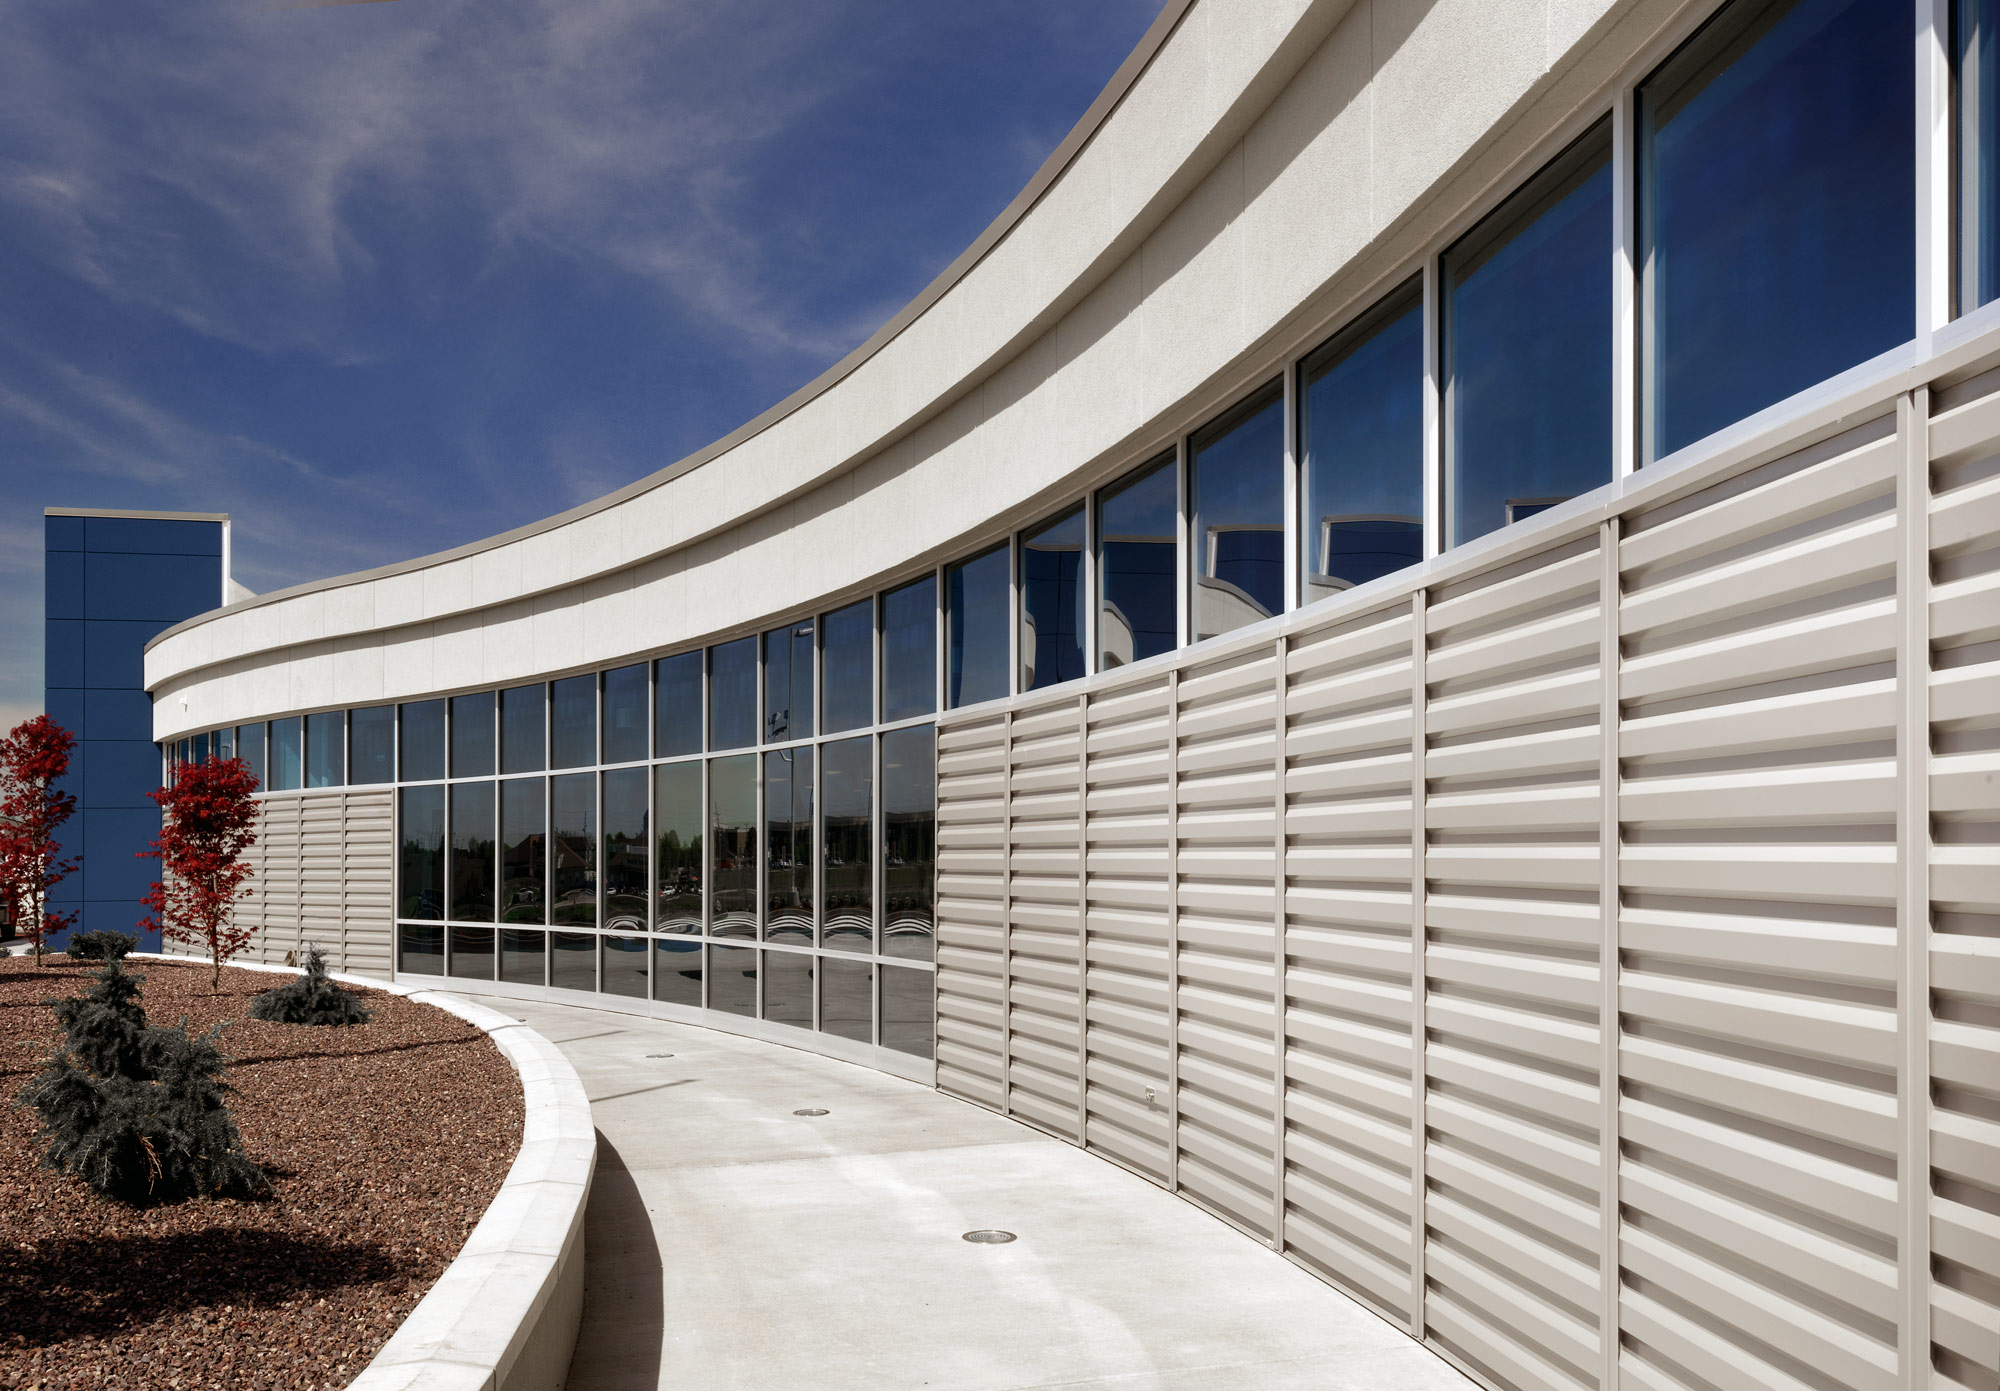 Fieldhouse-Sportscenter-H-Design-Exterior-02.jpg